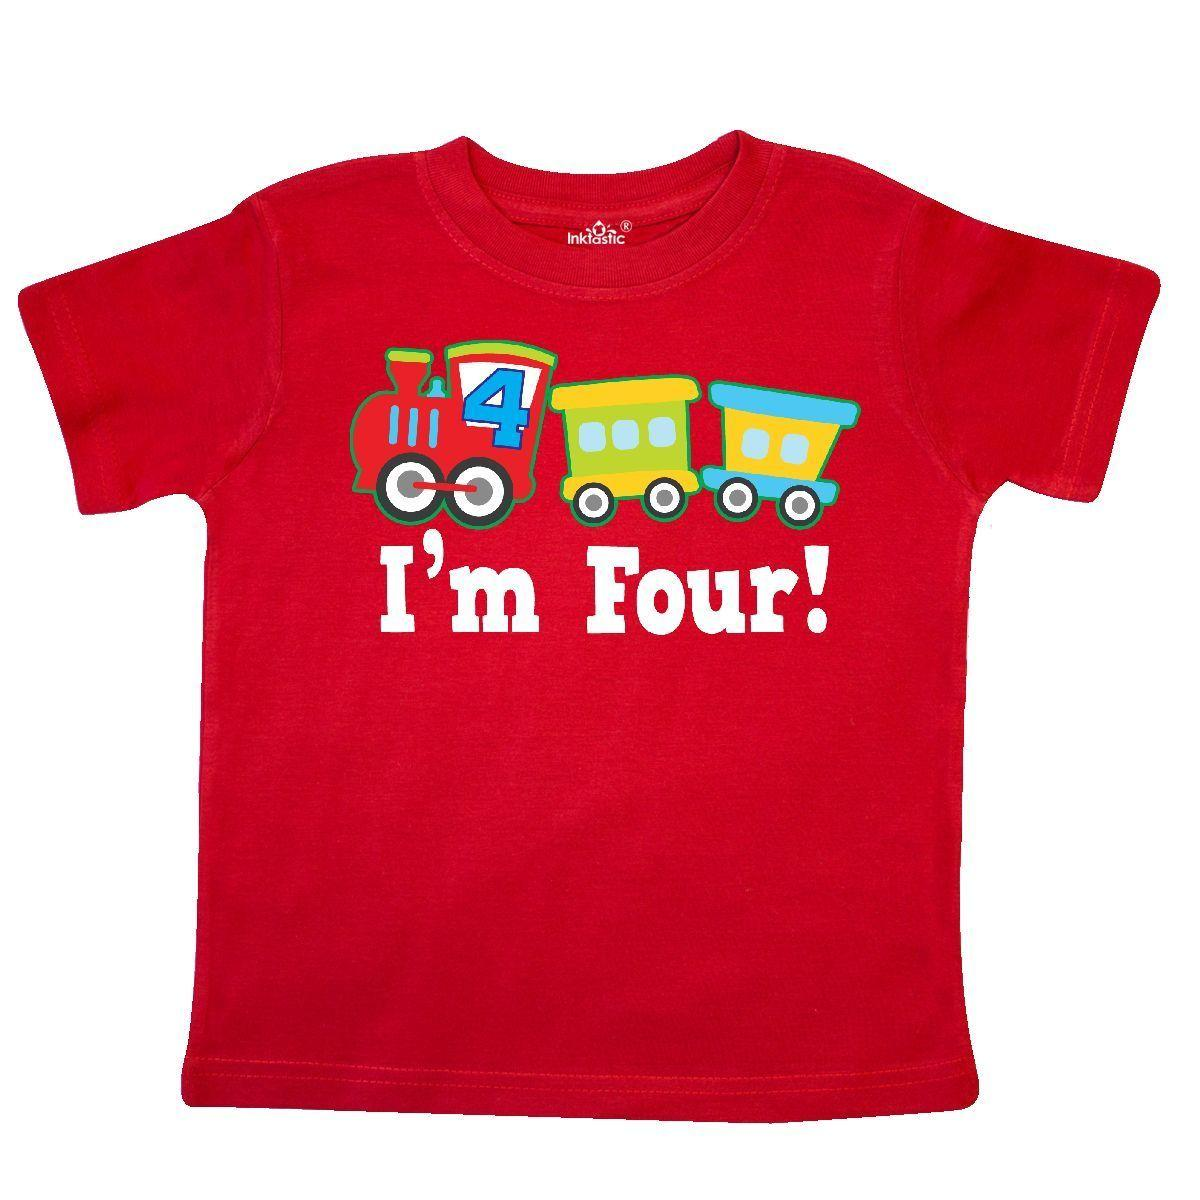 Inktastic 4th Birthday Train Outfit Toddler T Shirt 4 Year Old Themed Boys Party Funny Unisex Casual Tee Gift Deals Online Shopping Shirts